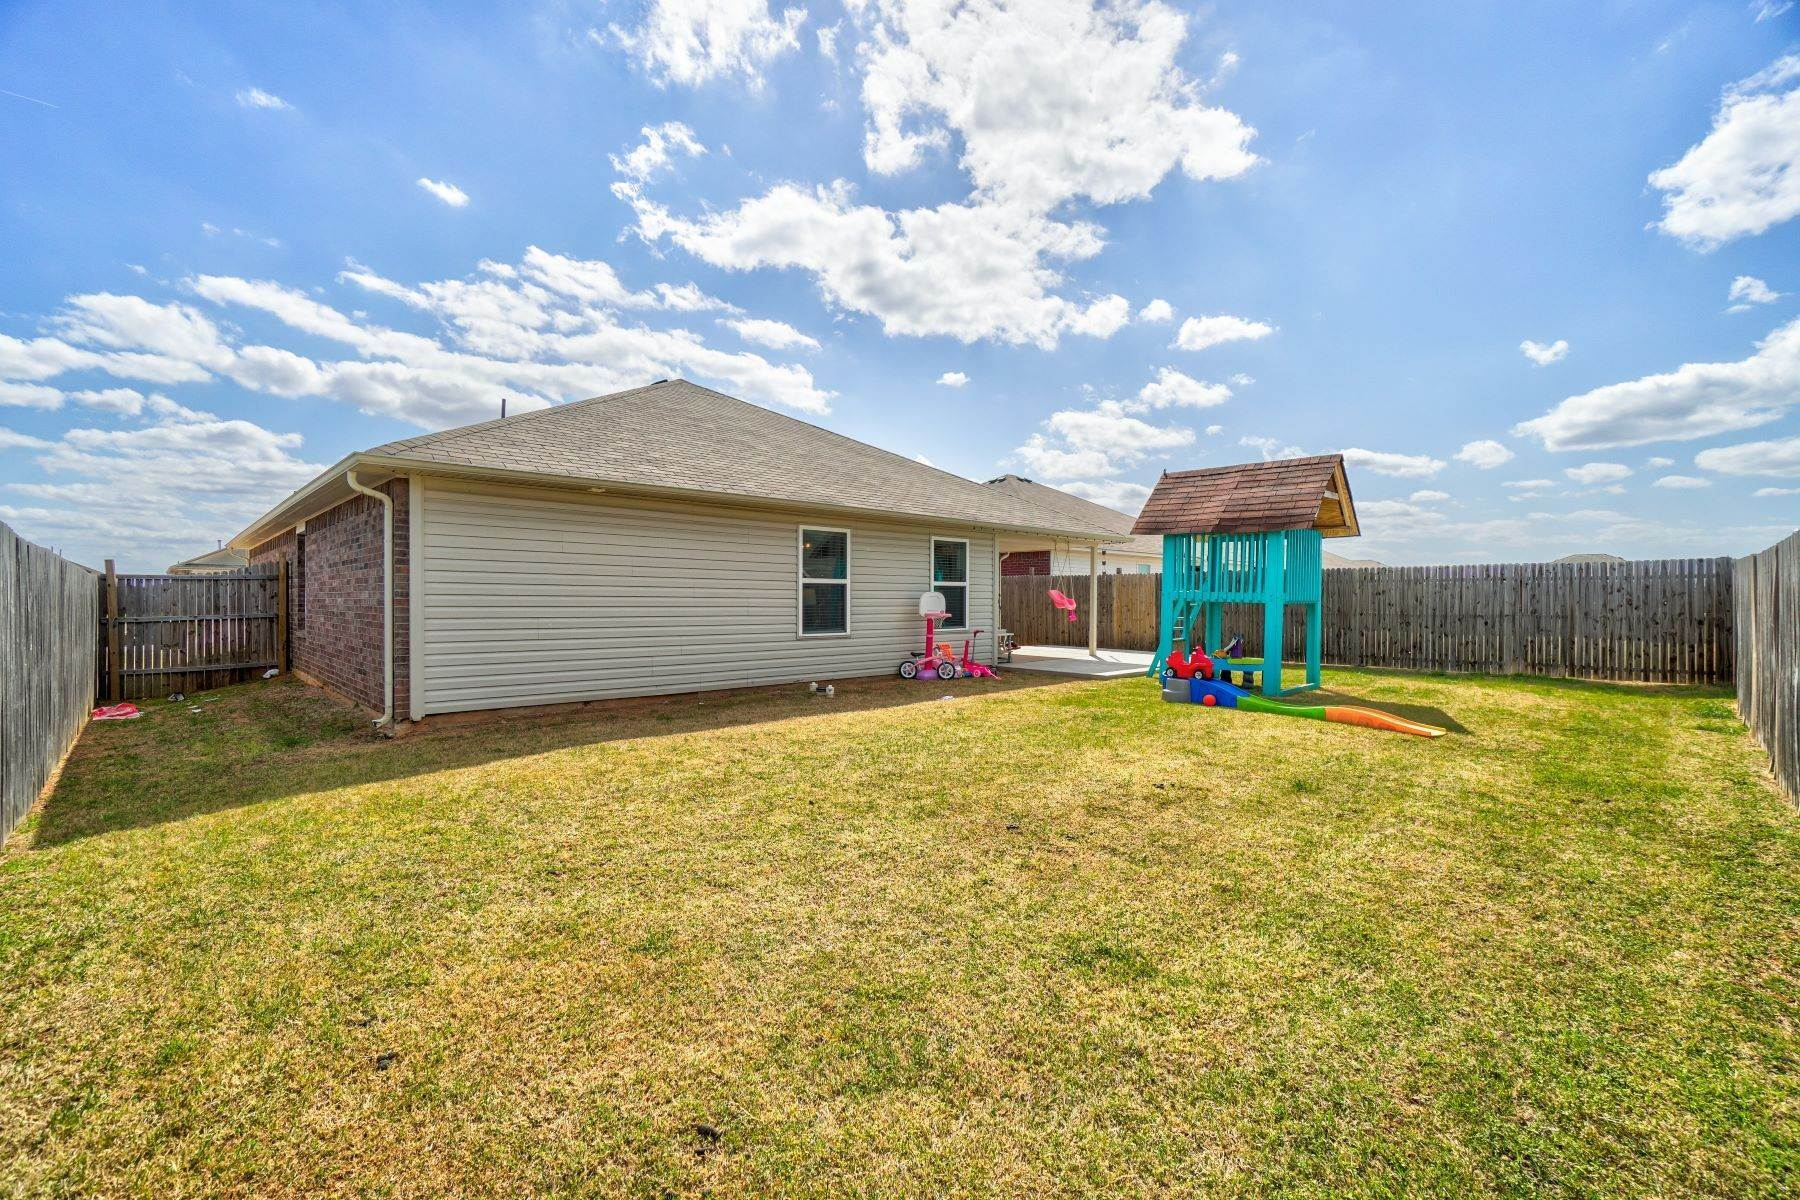 25. Single Family Homes for Sale at 11805 Northwest 135th Street, Piedmont, OK 73078 11805 Northwest 135th Street Piedmont, Oklahoma 73078 United States